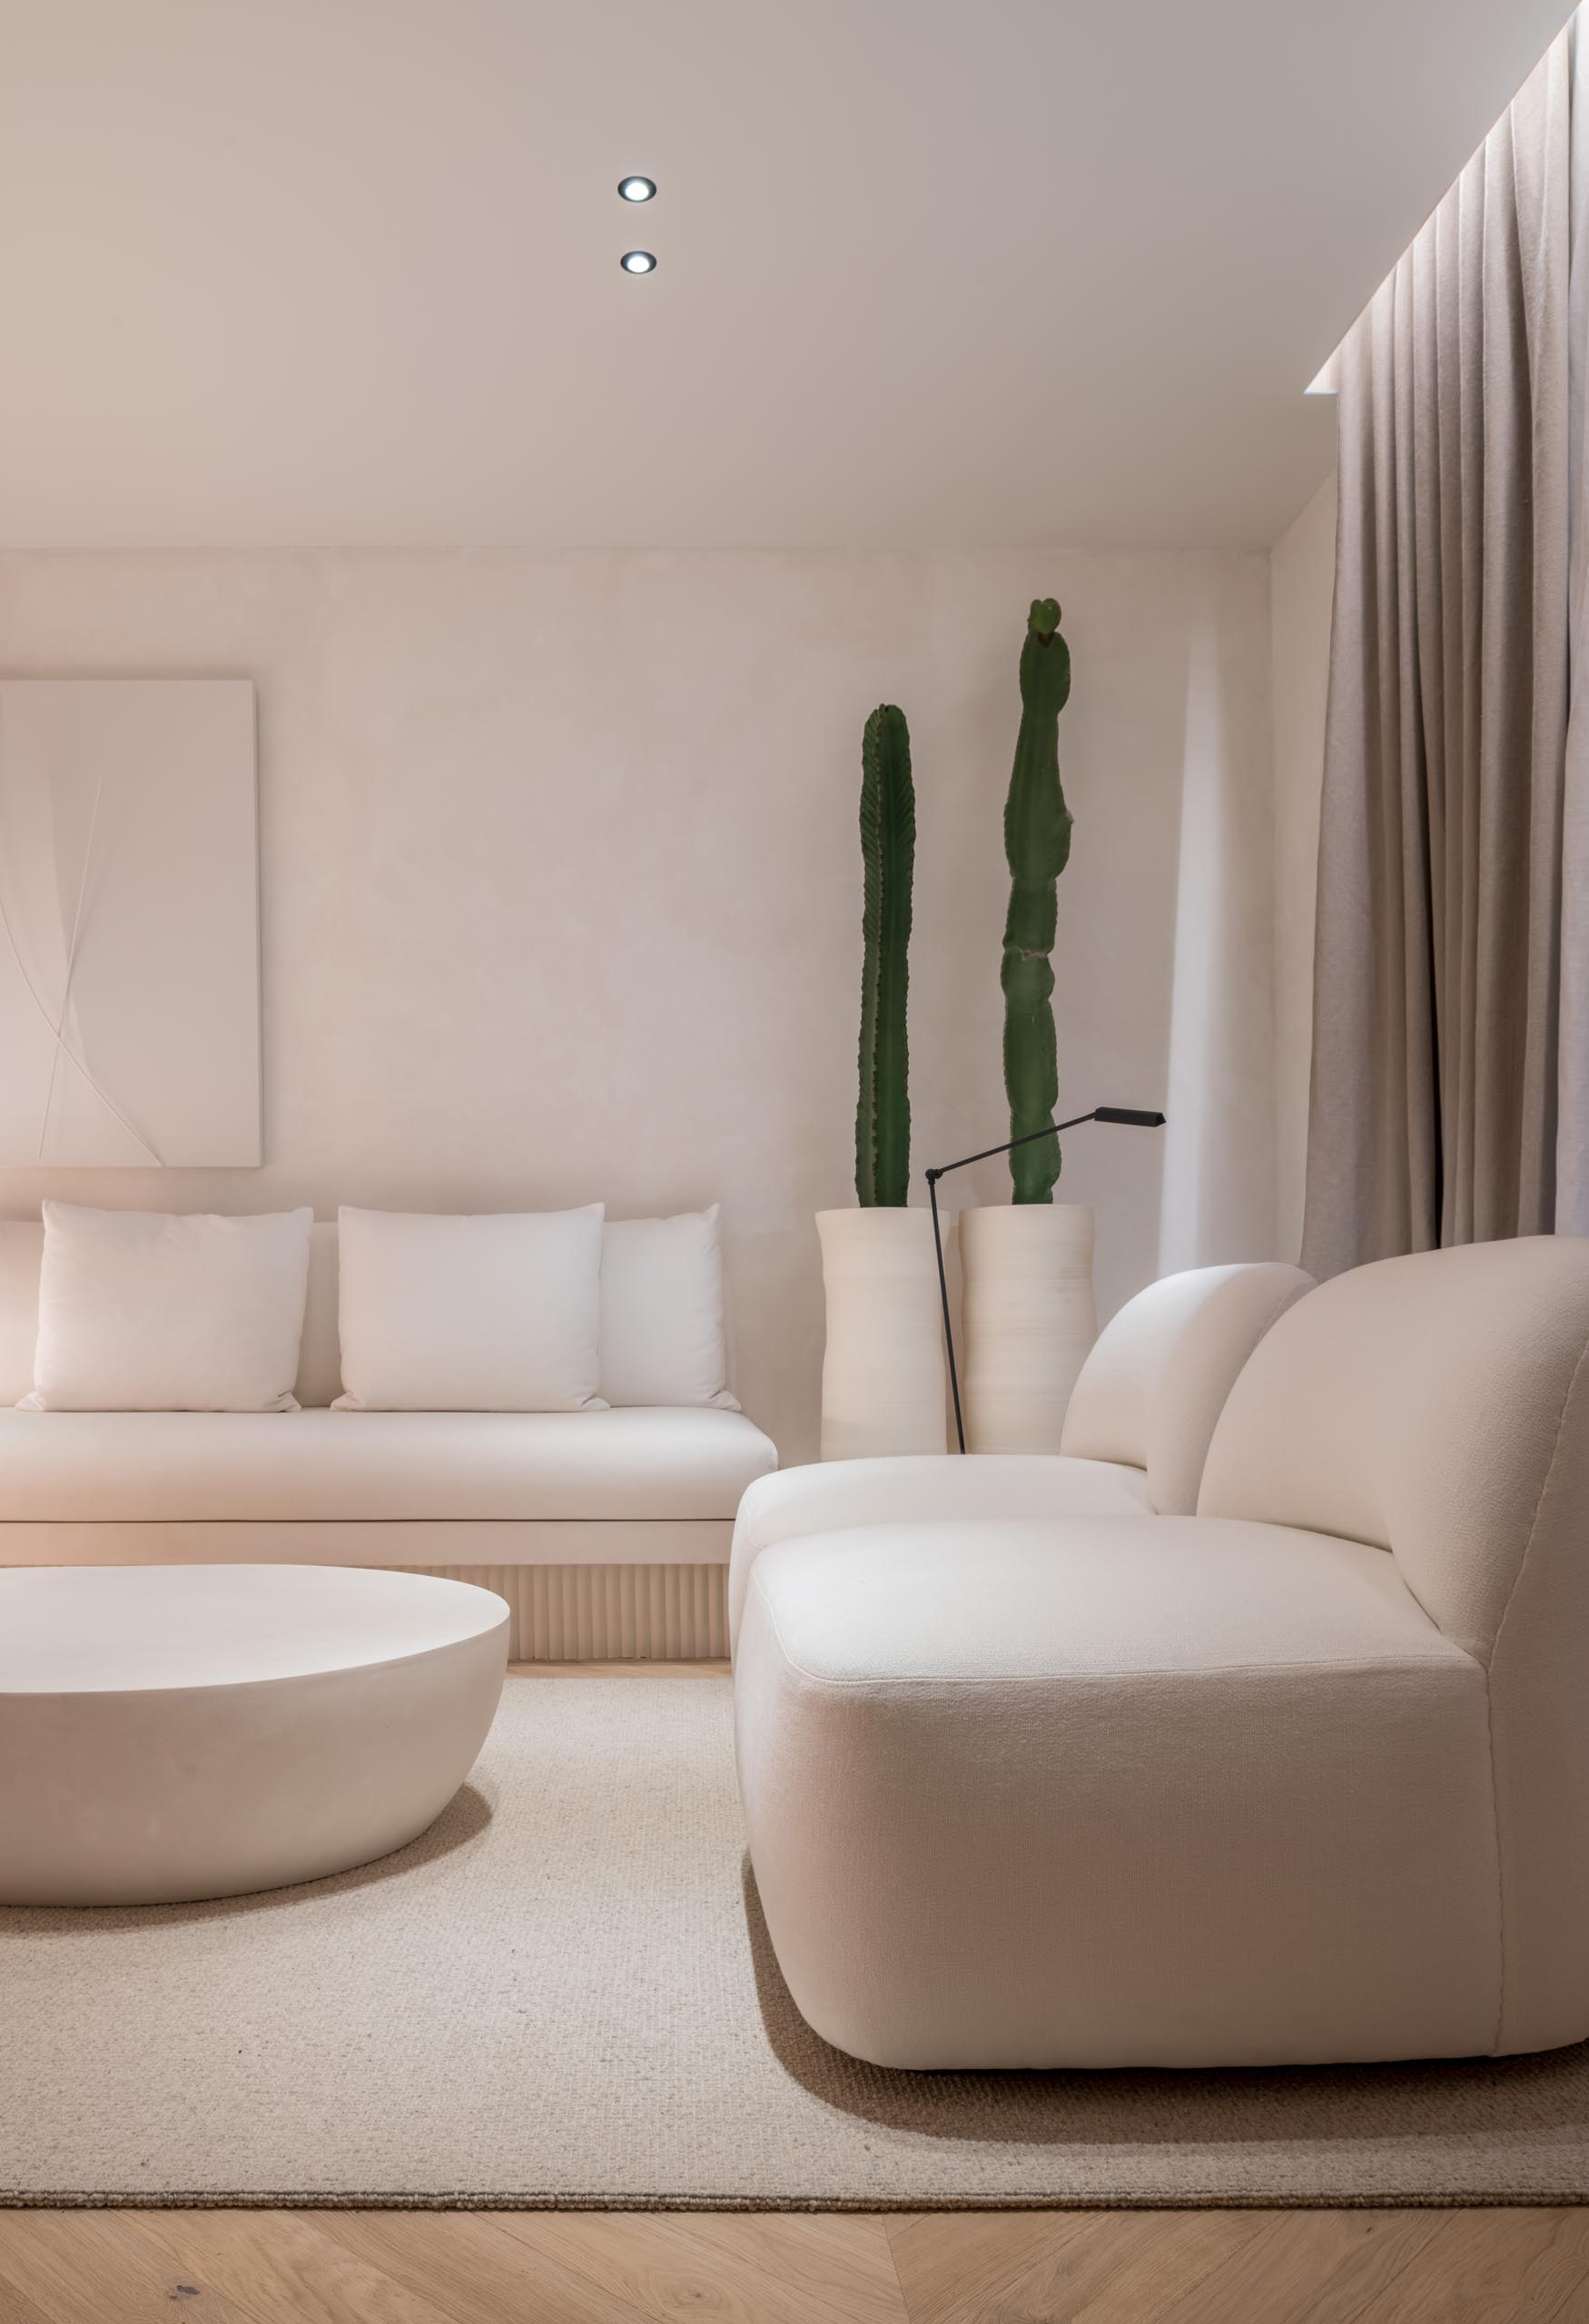 A living room with a simple white color palette, a built-in fireplace, and furniture with curved edges that creates a calm environment with a modern flair.